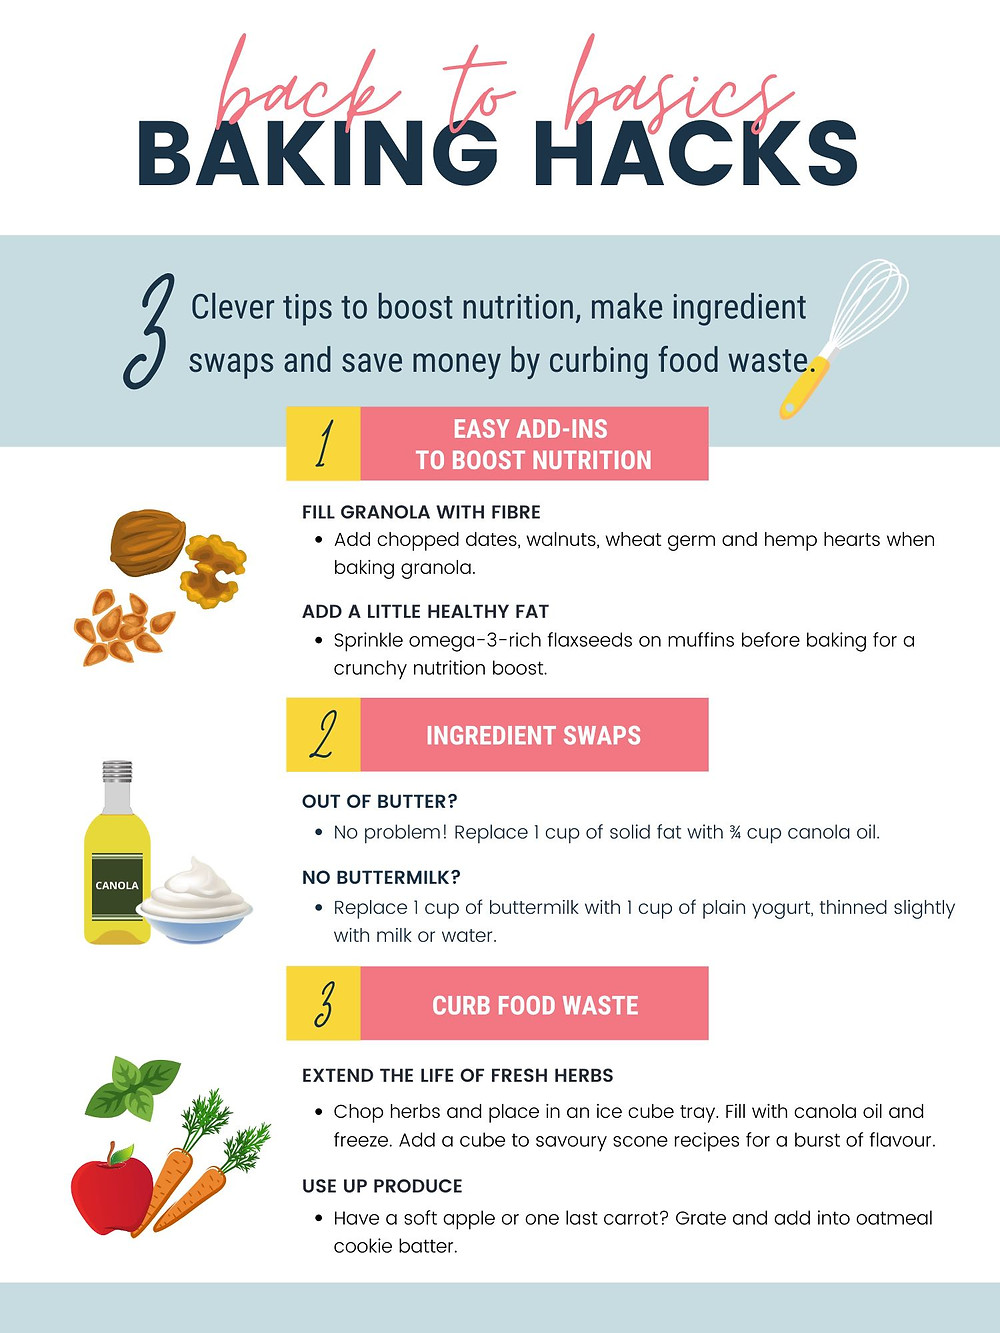 An infographic with baking hacks like how to add fibre.